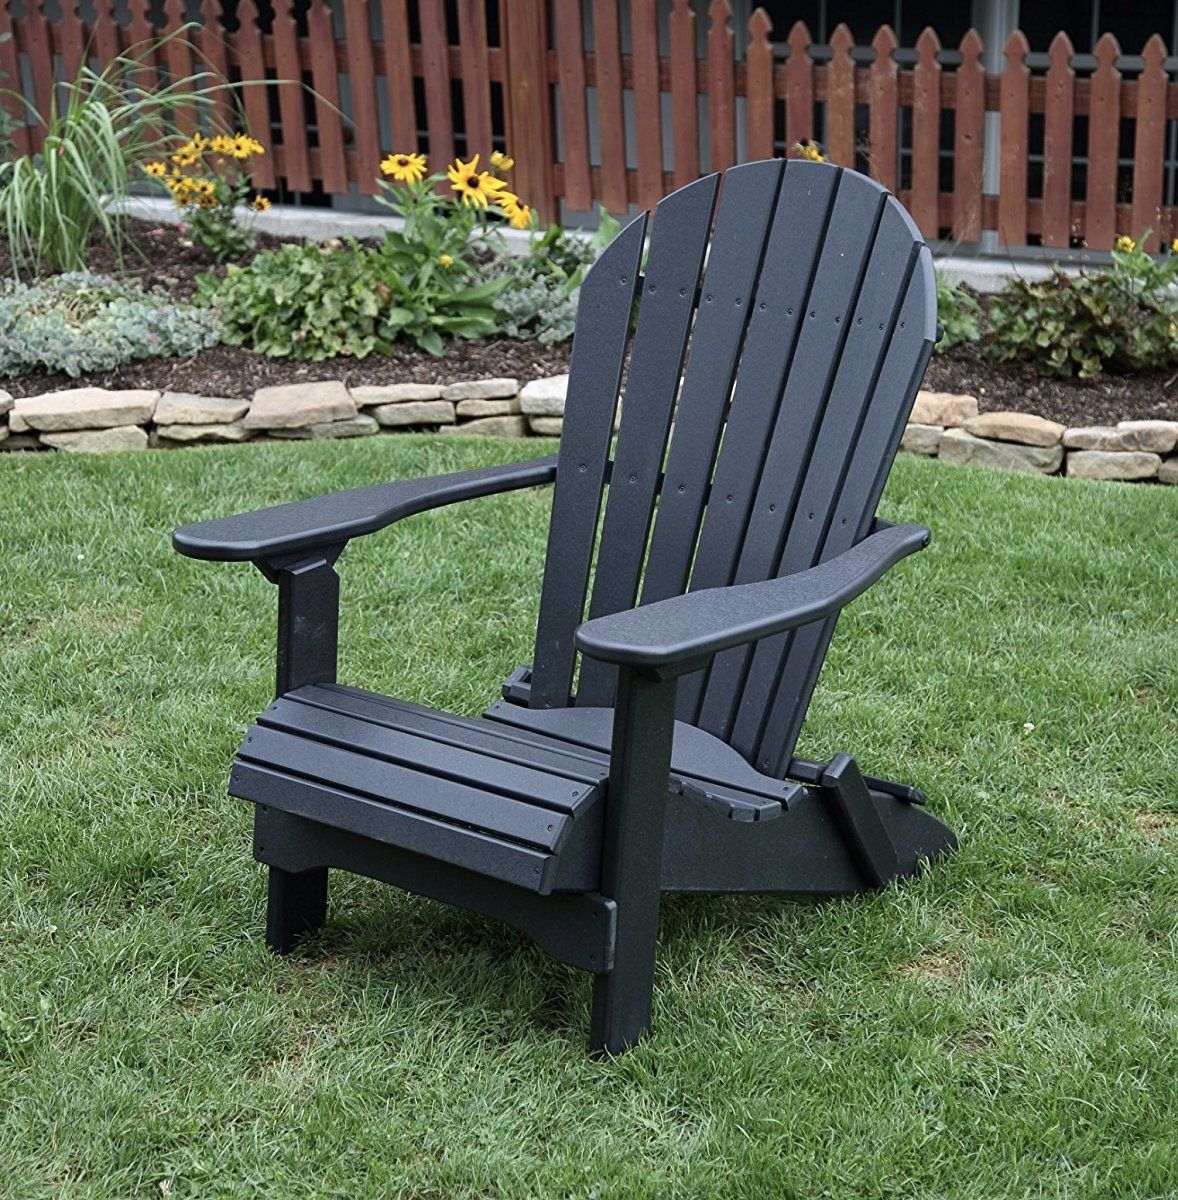 BLACK-POLY LUMBER Folding Adirondack Chair with Rolled Seating Heavy Duty EVERLASTING Lifetime PolyTuf HDPE & BLACK-POLY LUMBER Folding Adirondack Chair with Rolled Seating Heavy ...